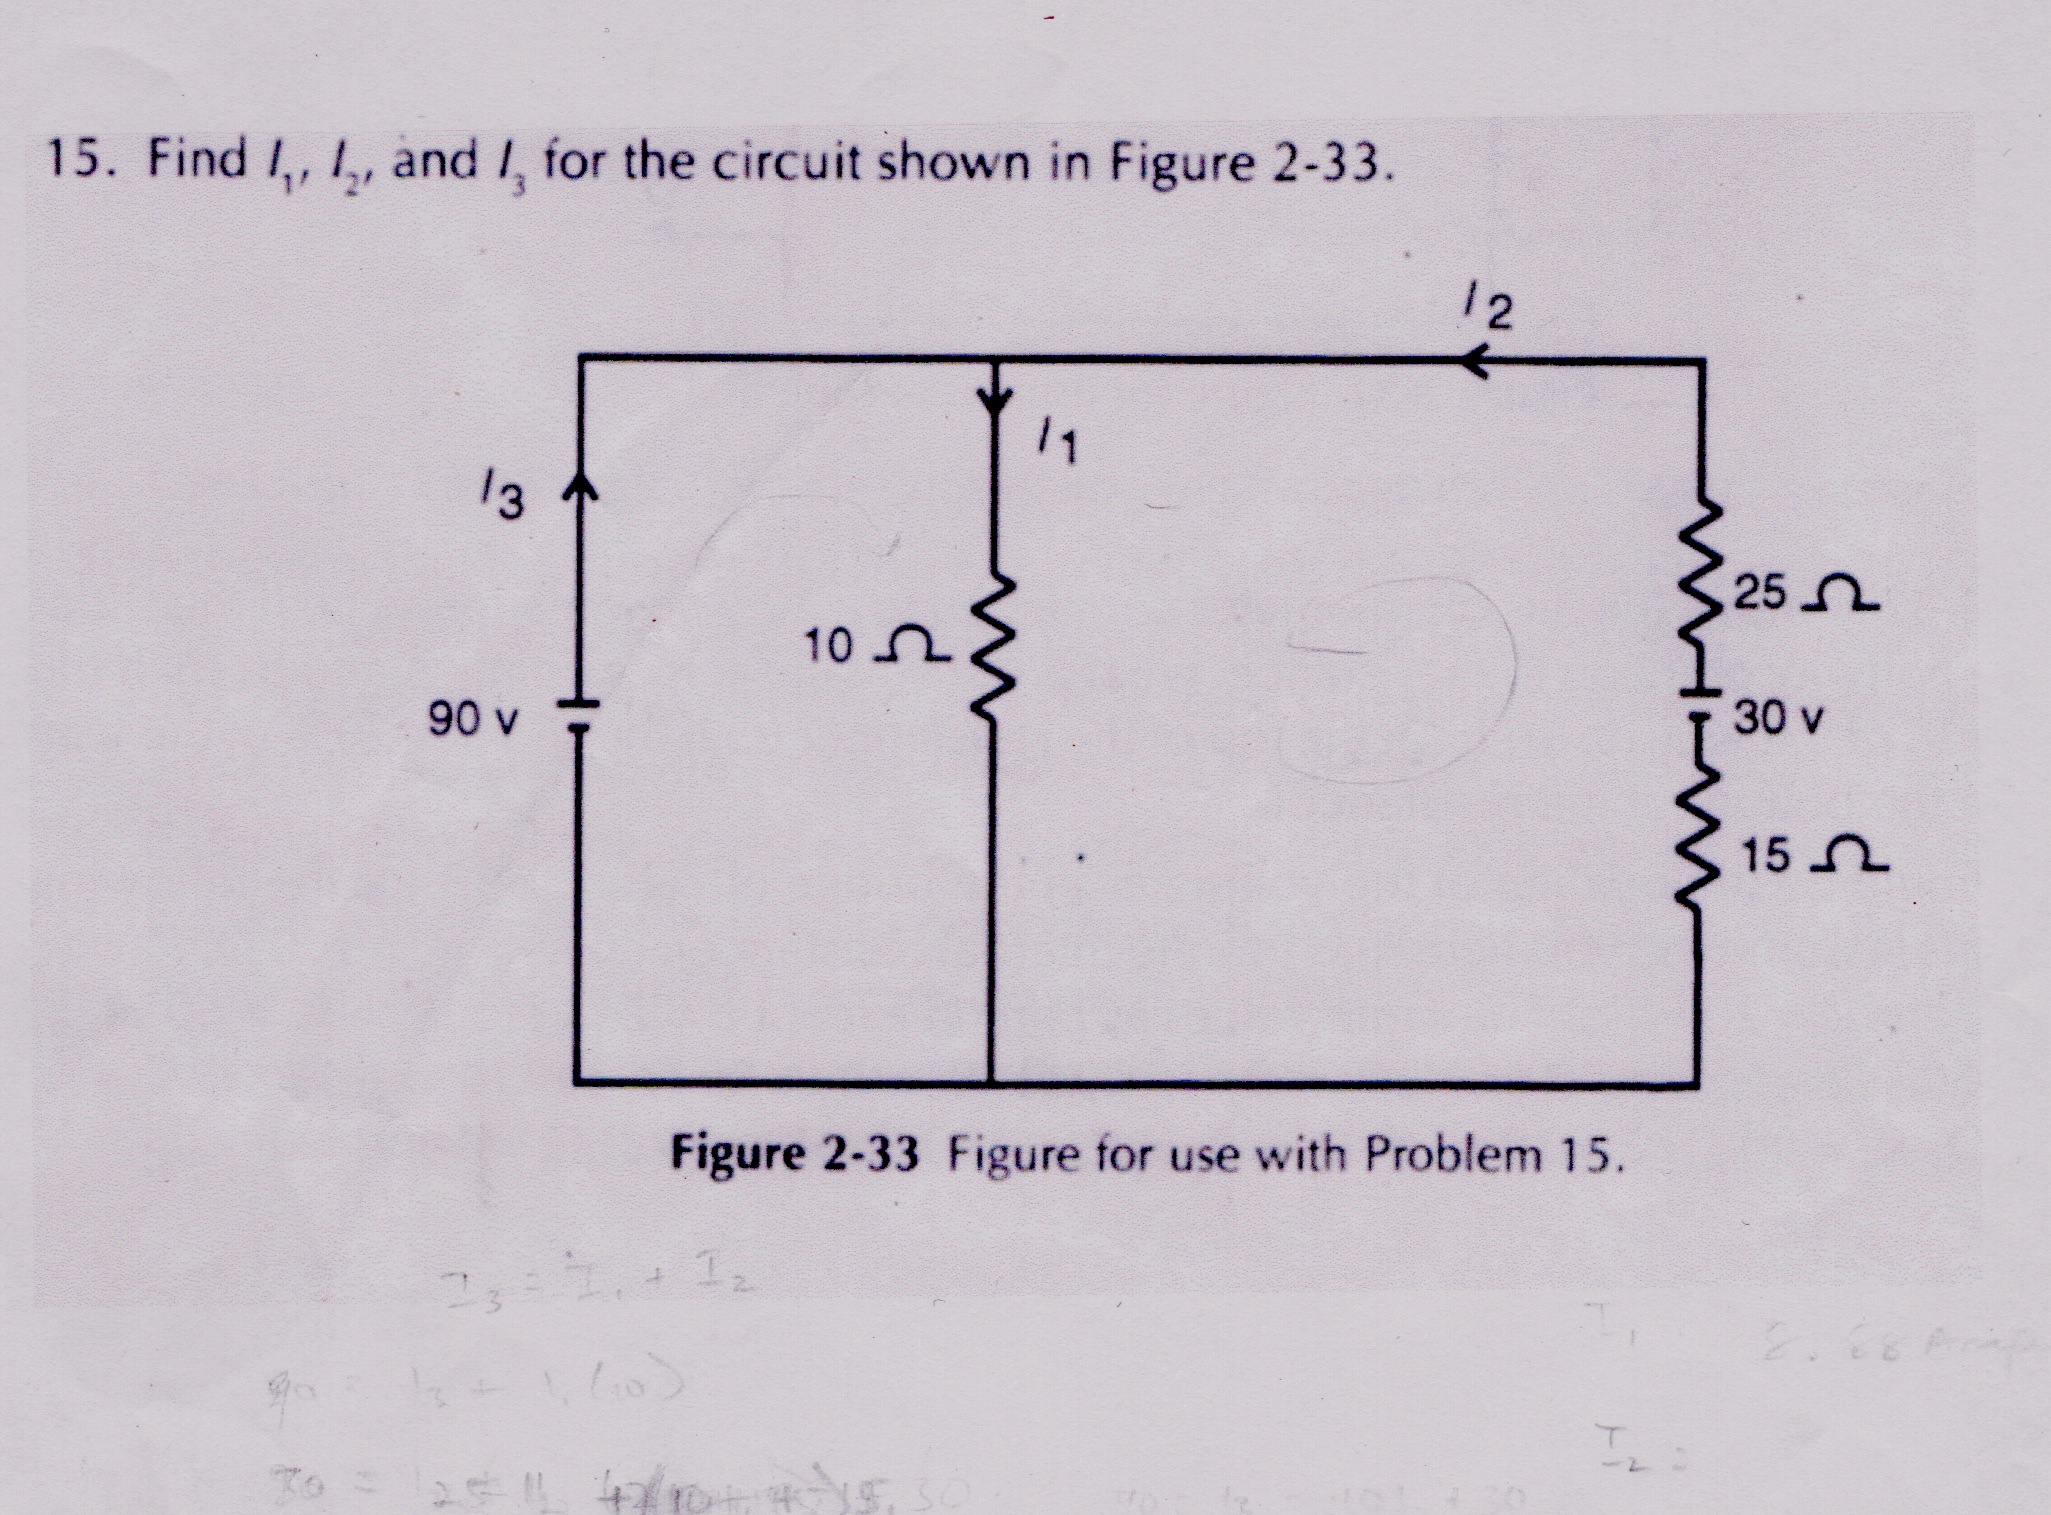 Find l1, l2, and l3 for the circuit shown in Figur